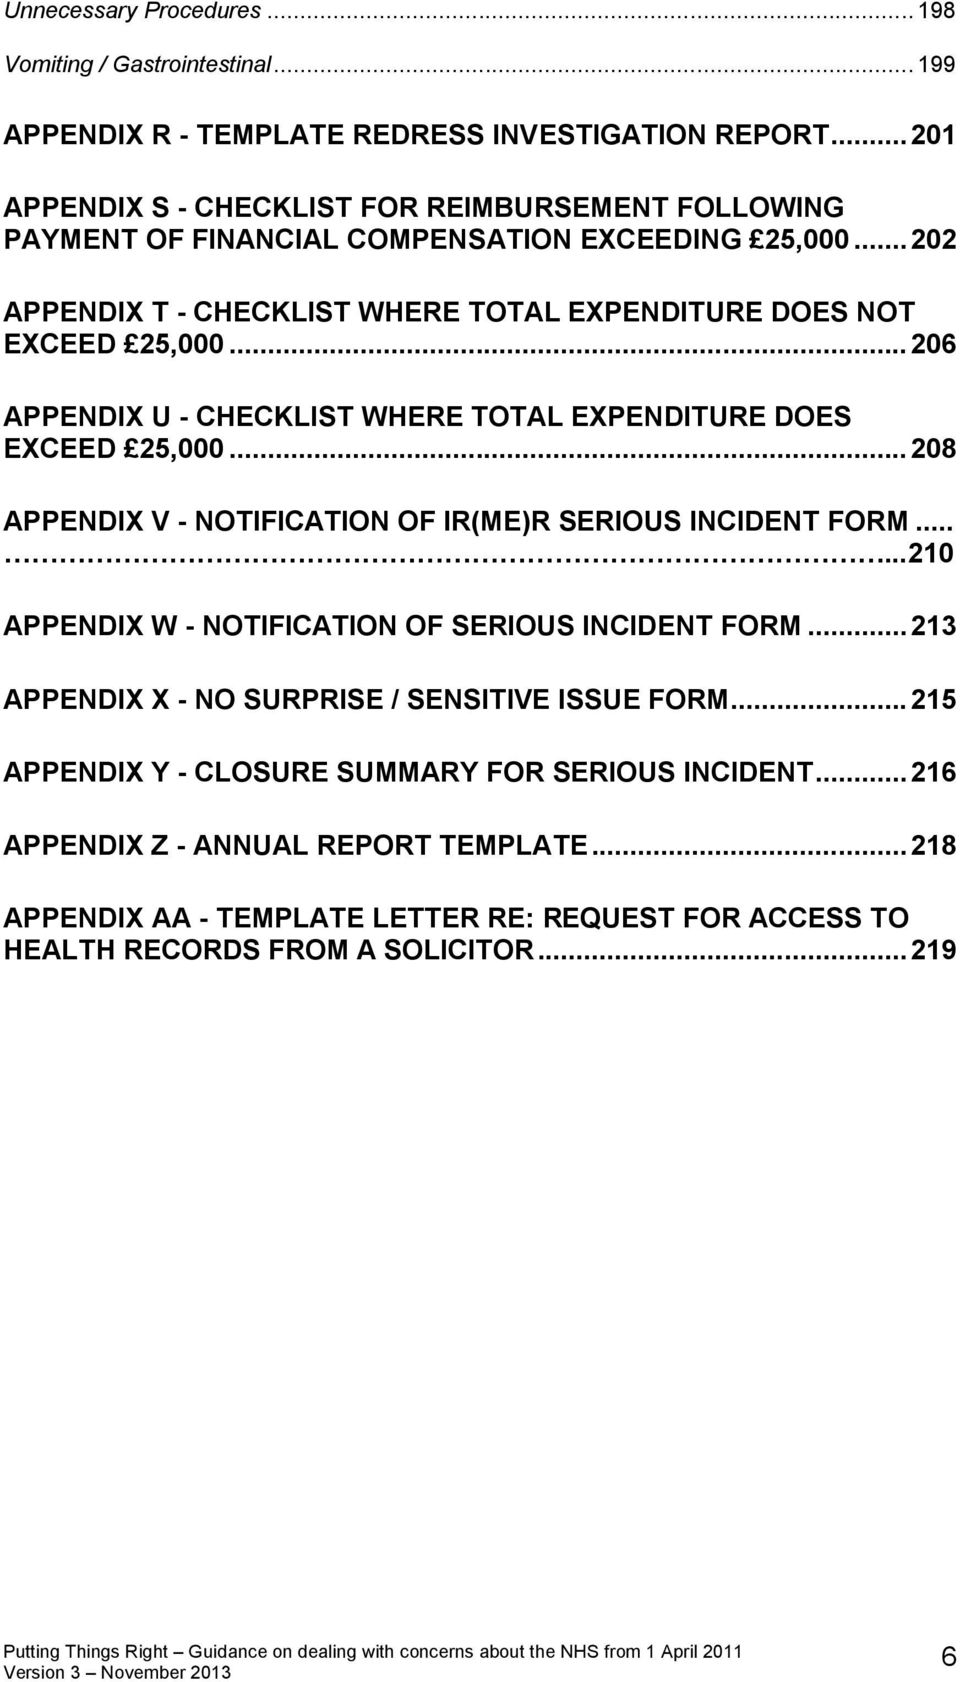 .. 206 APPENDIX U - CHECKLIST WHERE TOTAL EXPENDITURE DOES EXCEED 25,000... 208 APPENDIX V - NOTIFICATION OF IR(ME)R SERIOUS INCIDENT FORM.